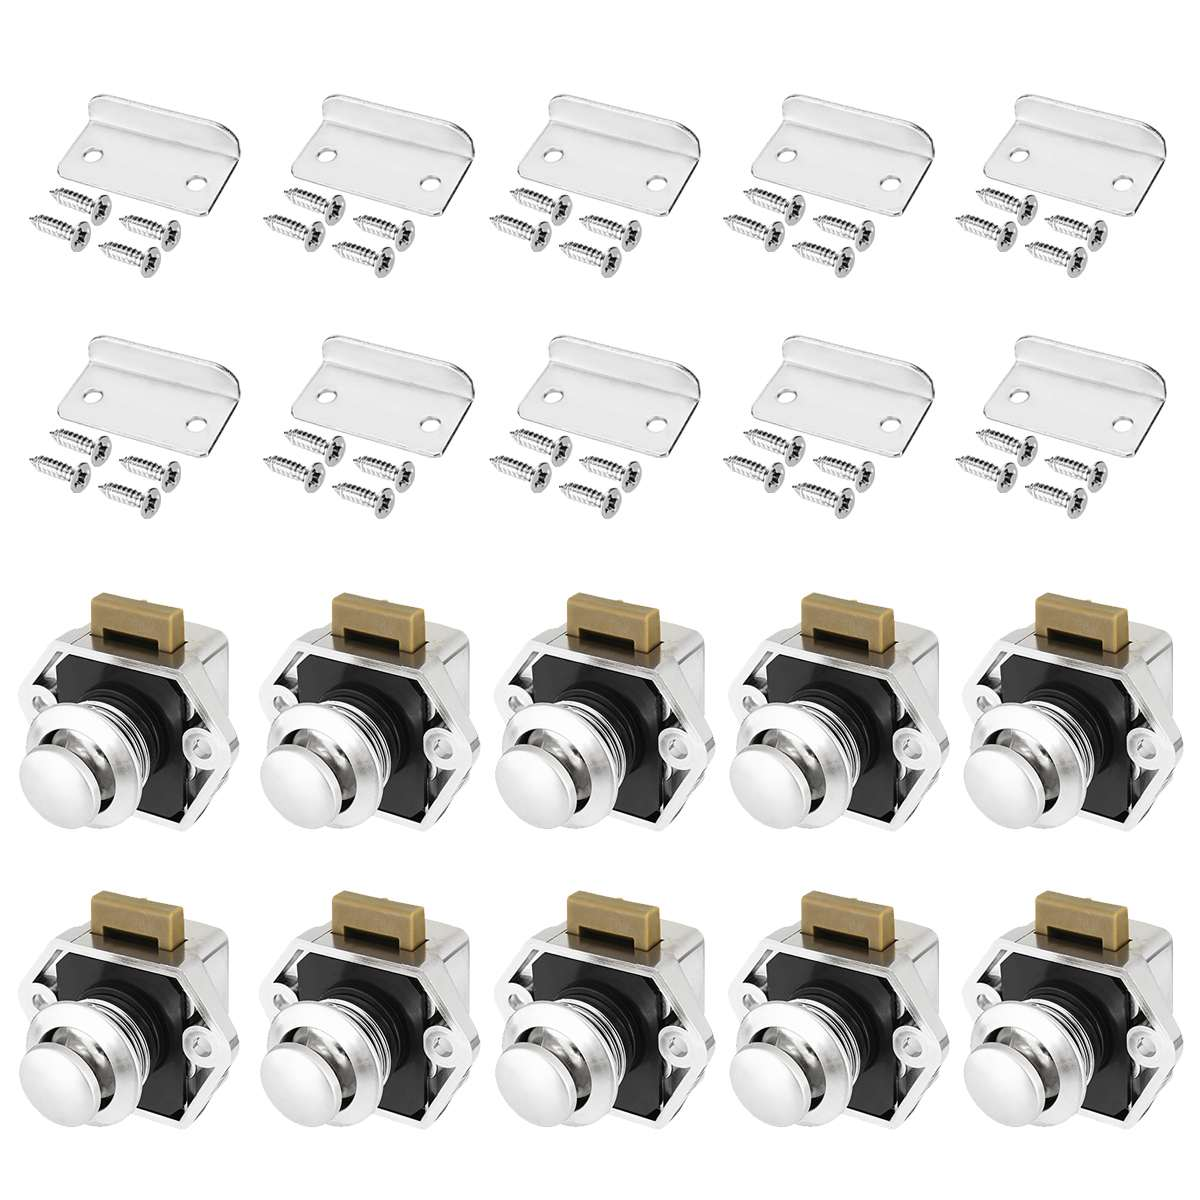 10pcs  Car Push Lock Diameter 20mm RV Caravan Boat Motor Home Cabinet Drawer Latch Button Locks For Furniture Hardware